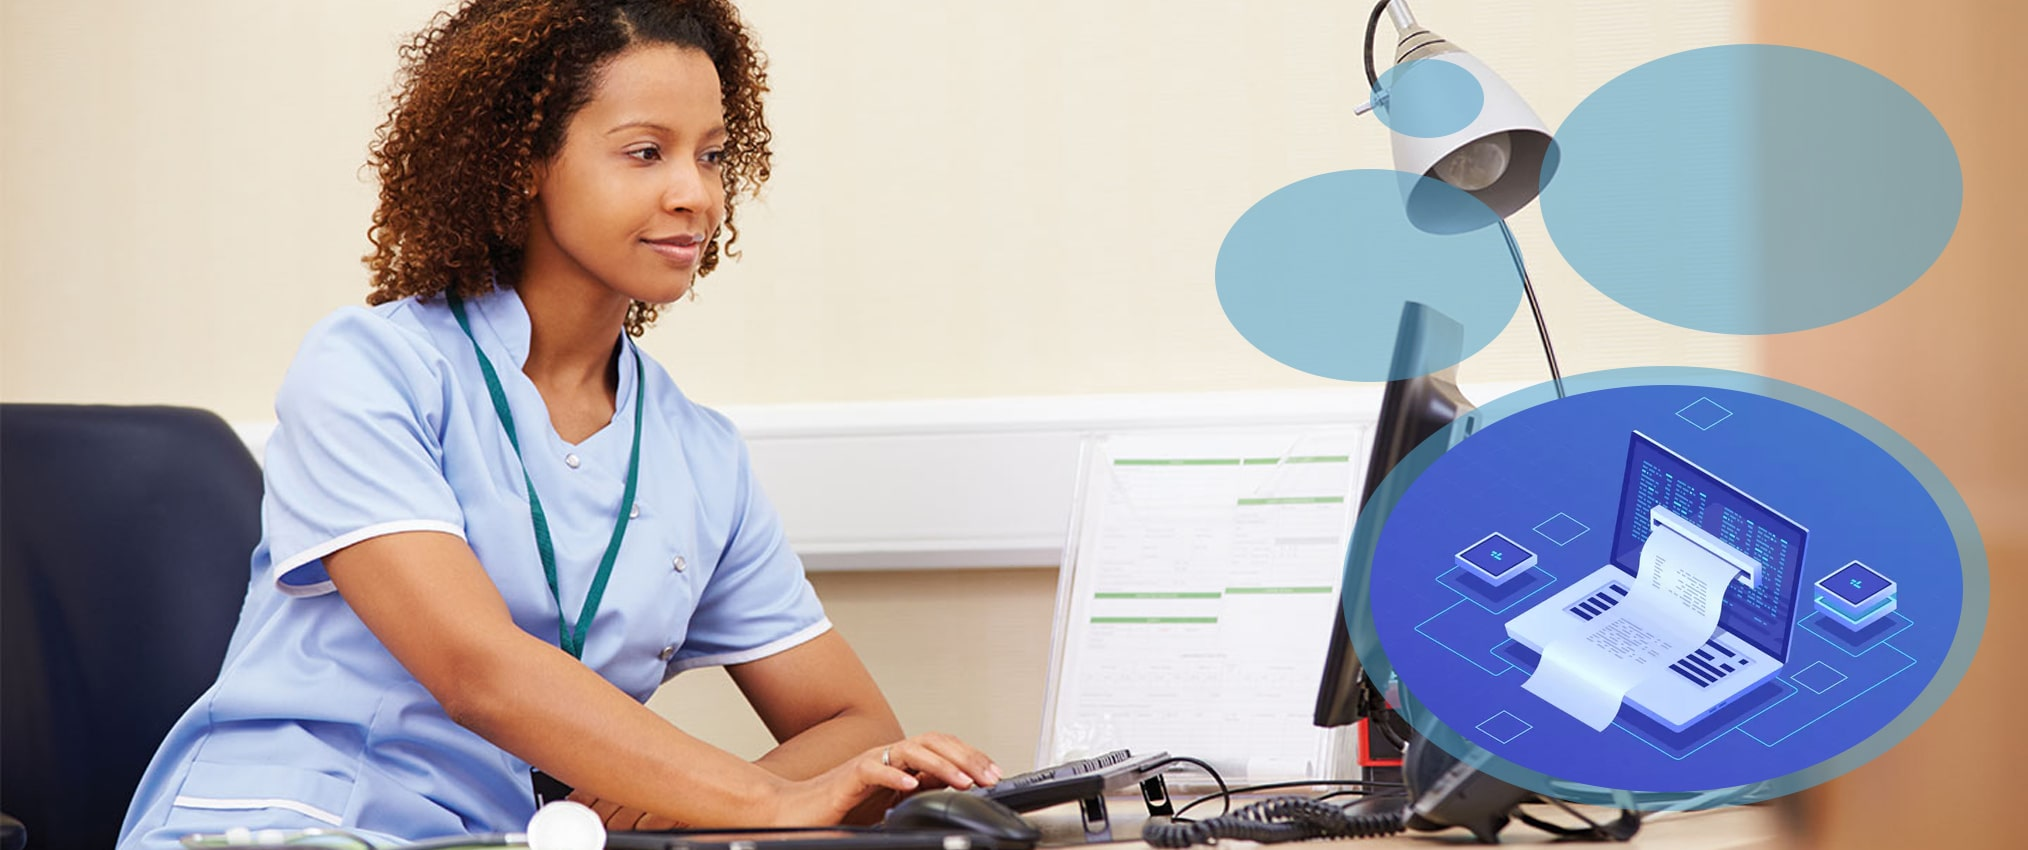 Outsourcing medical billing services helps save money